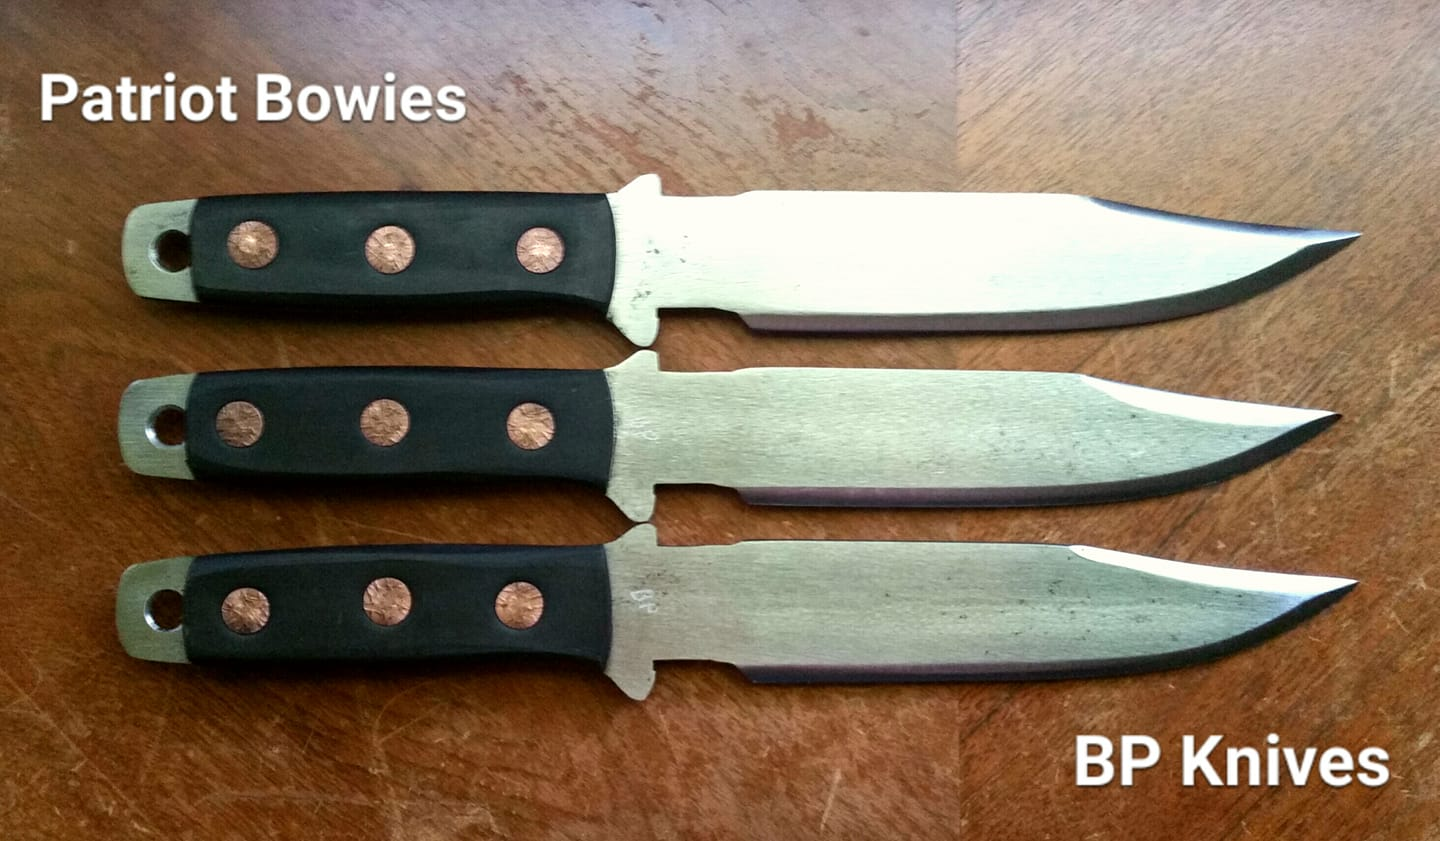 Artist Maker: BP Knives, Bill Page